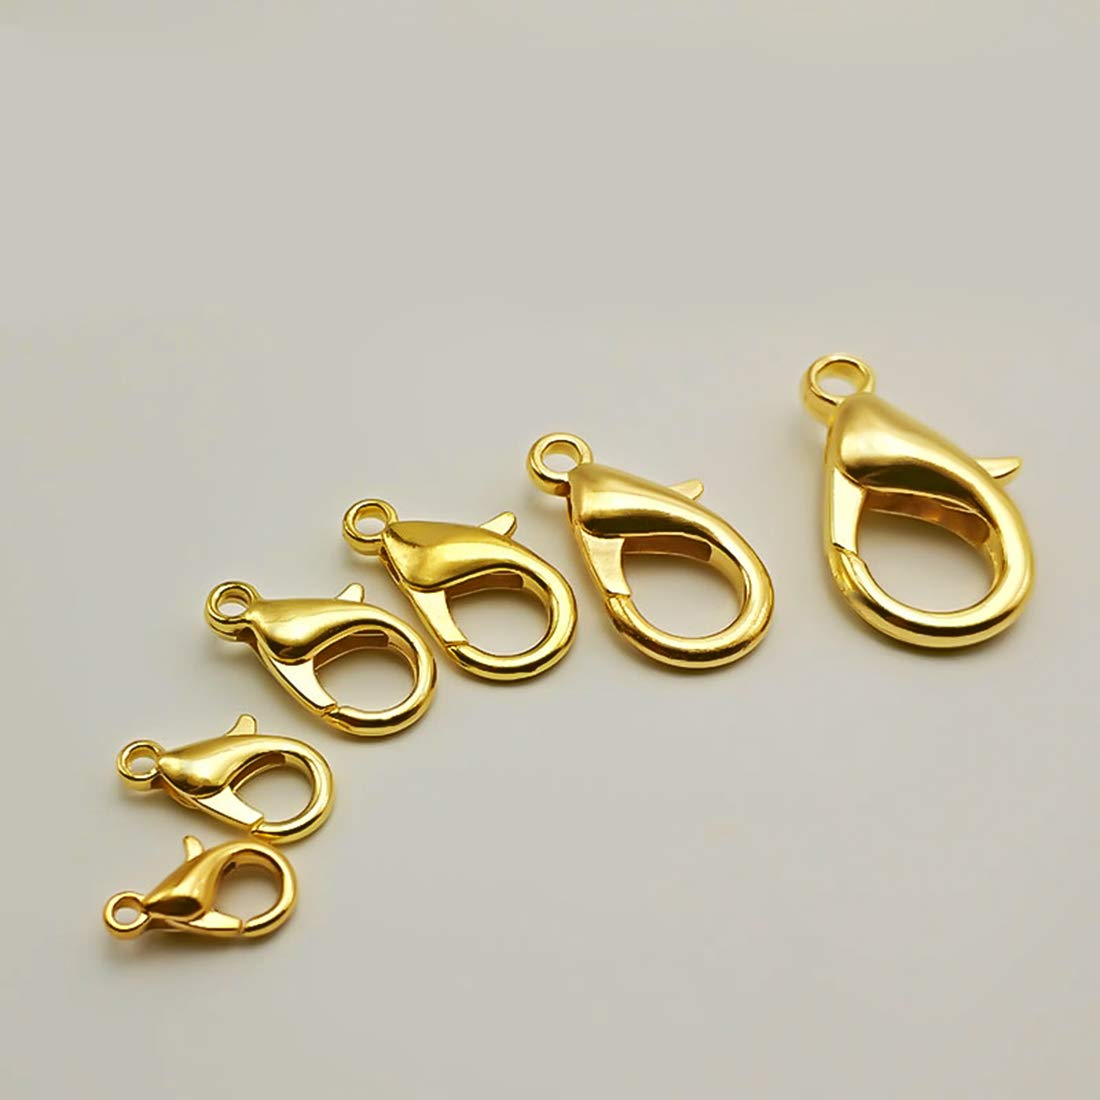 Sdootjewelry 180 Pcs Gold Plated Jewelry Lobster Claw Clasps Findings 6 Sizes Lobster Clasps